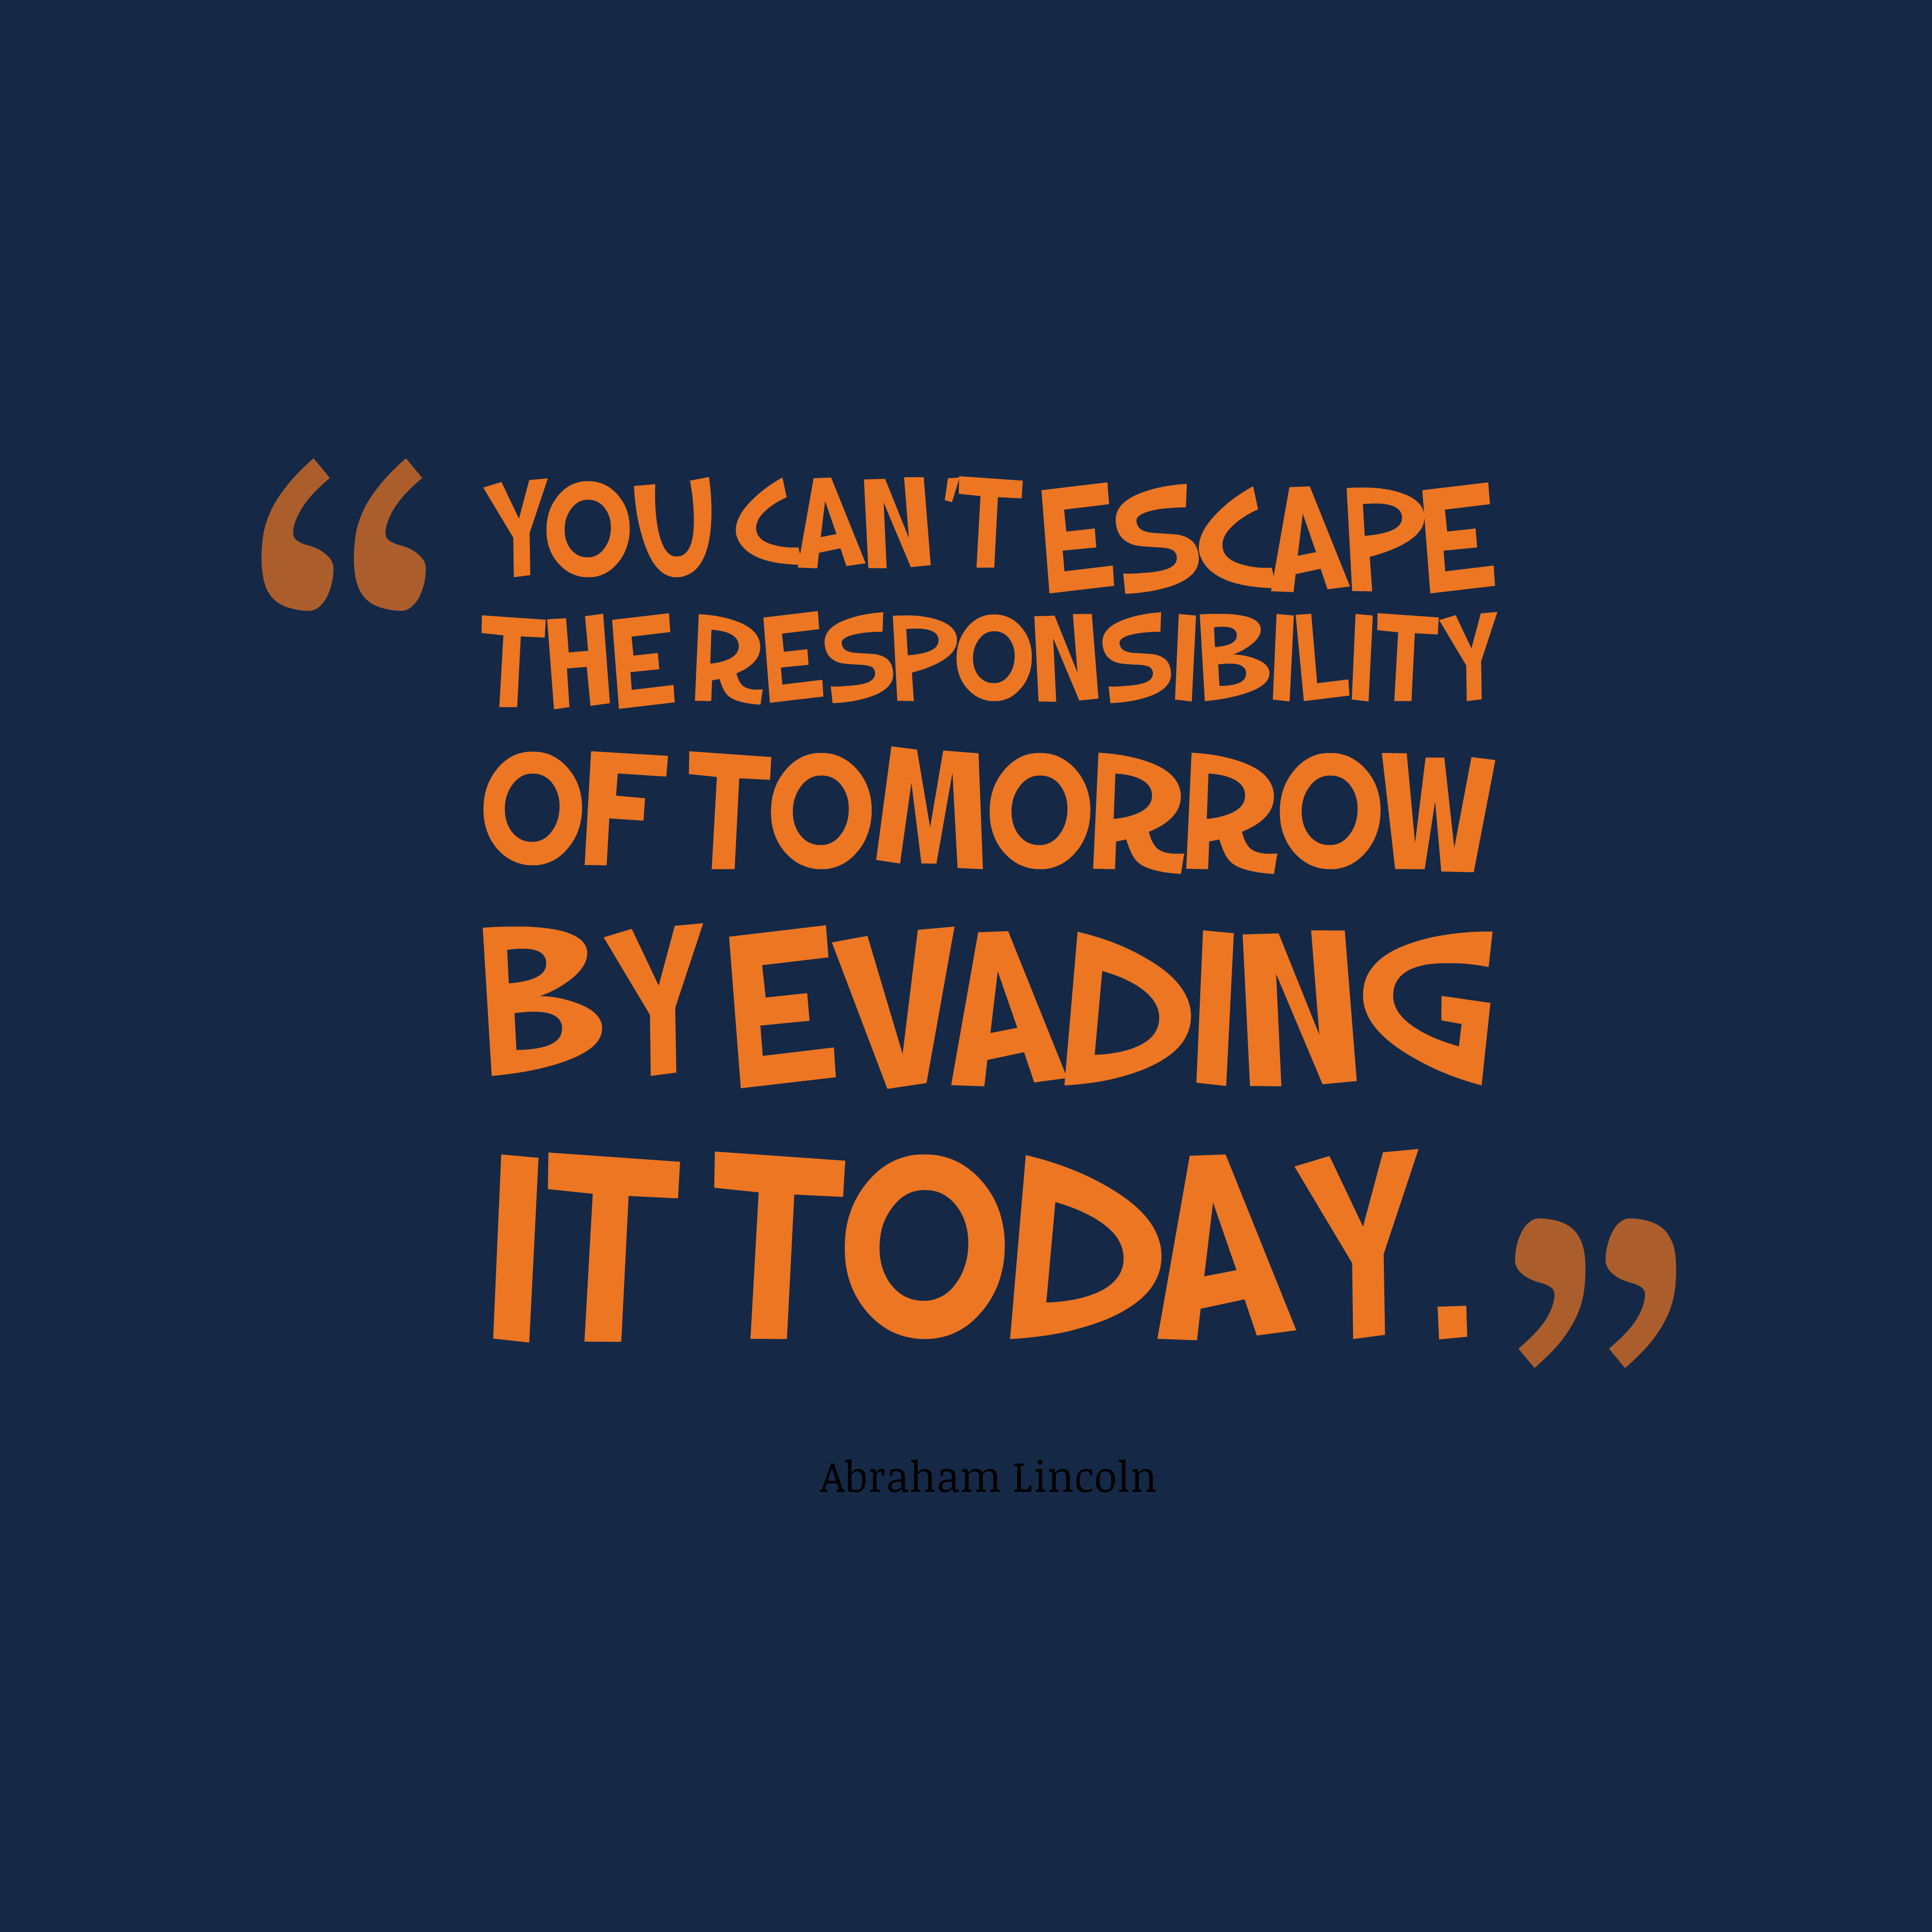 Quotes image of You can't escape the responsibility of tomorrow by evading it today.